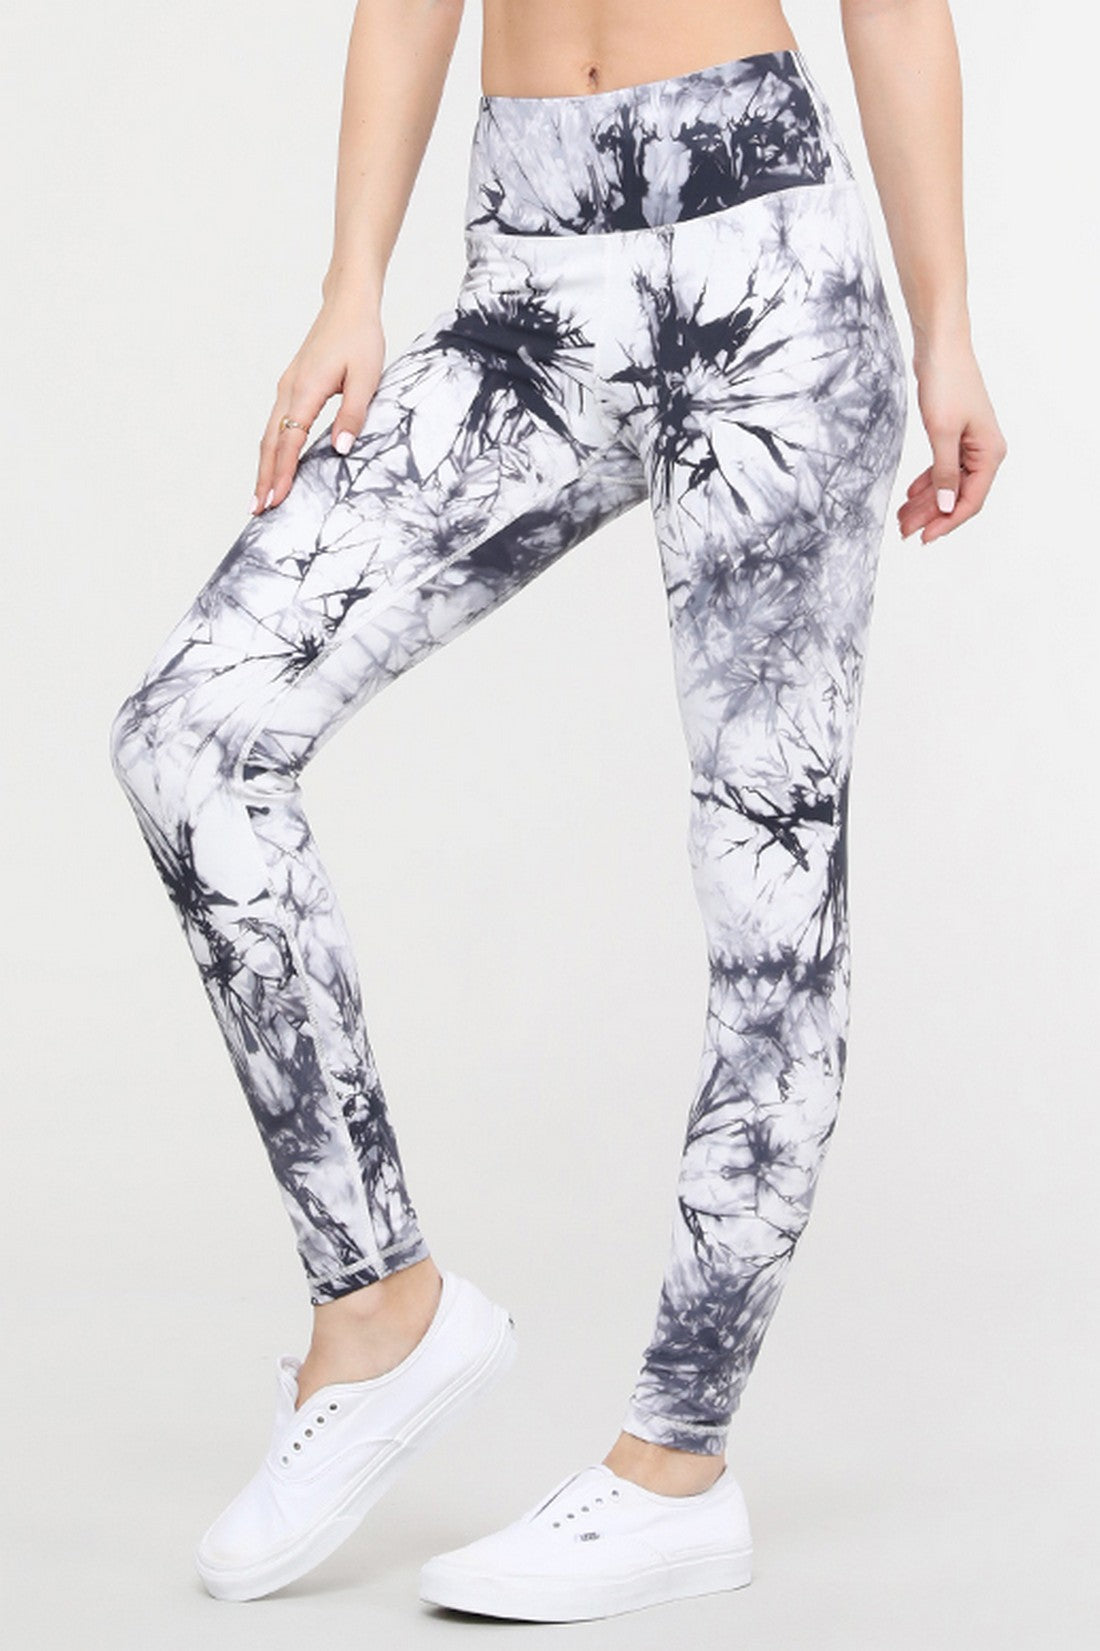 Tie Dye Workout Leggings - White - SportyLeggings.com